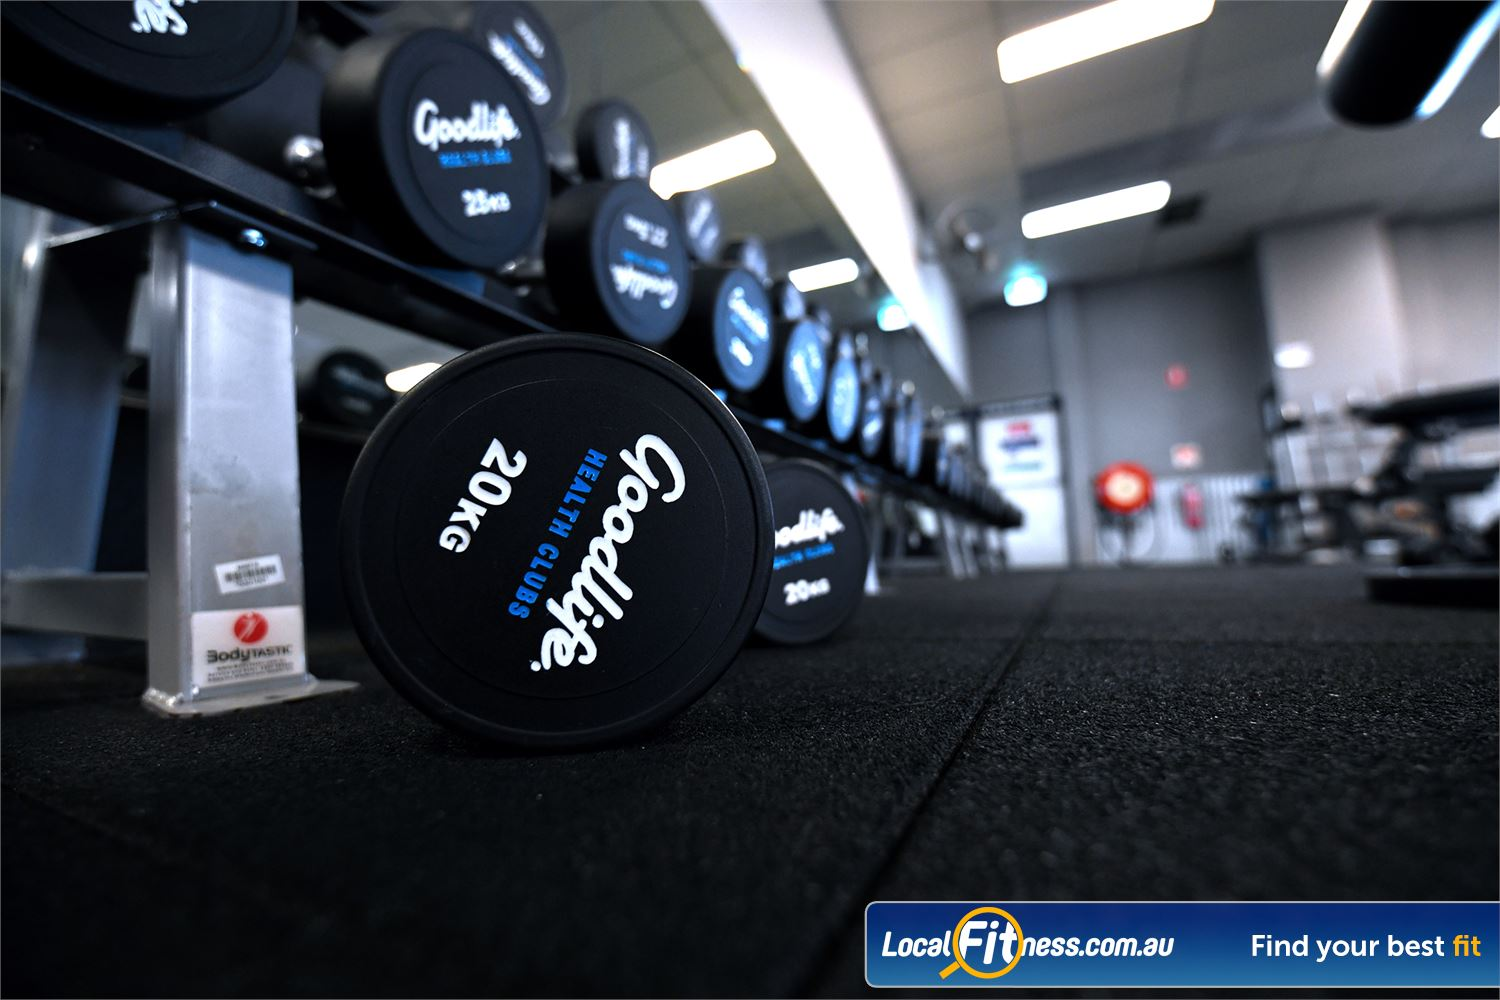 Goodlife Health Clubs Near Werribee Our free-weights gym area includes a full range of dumbbells.